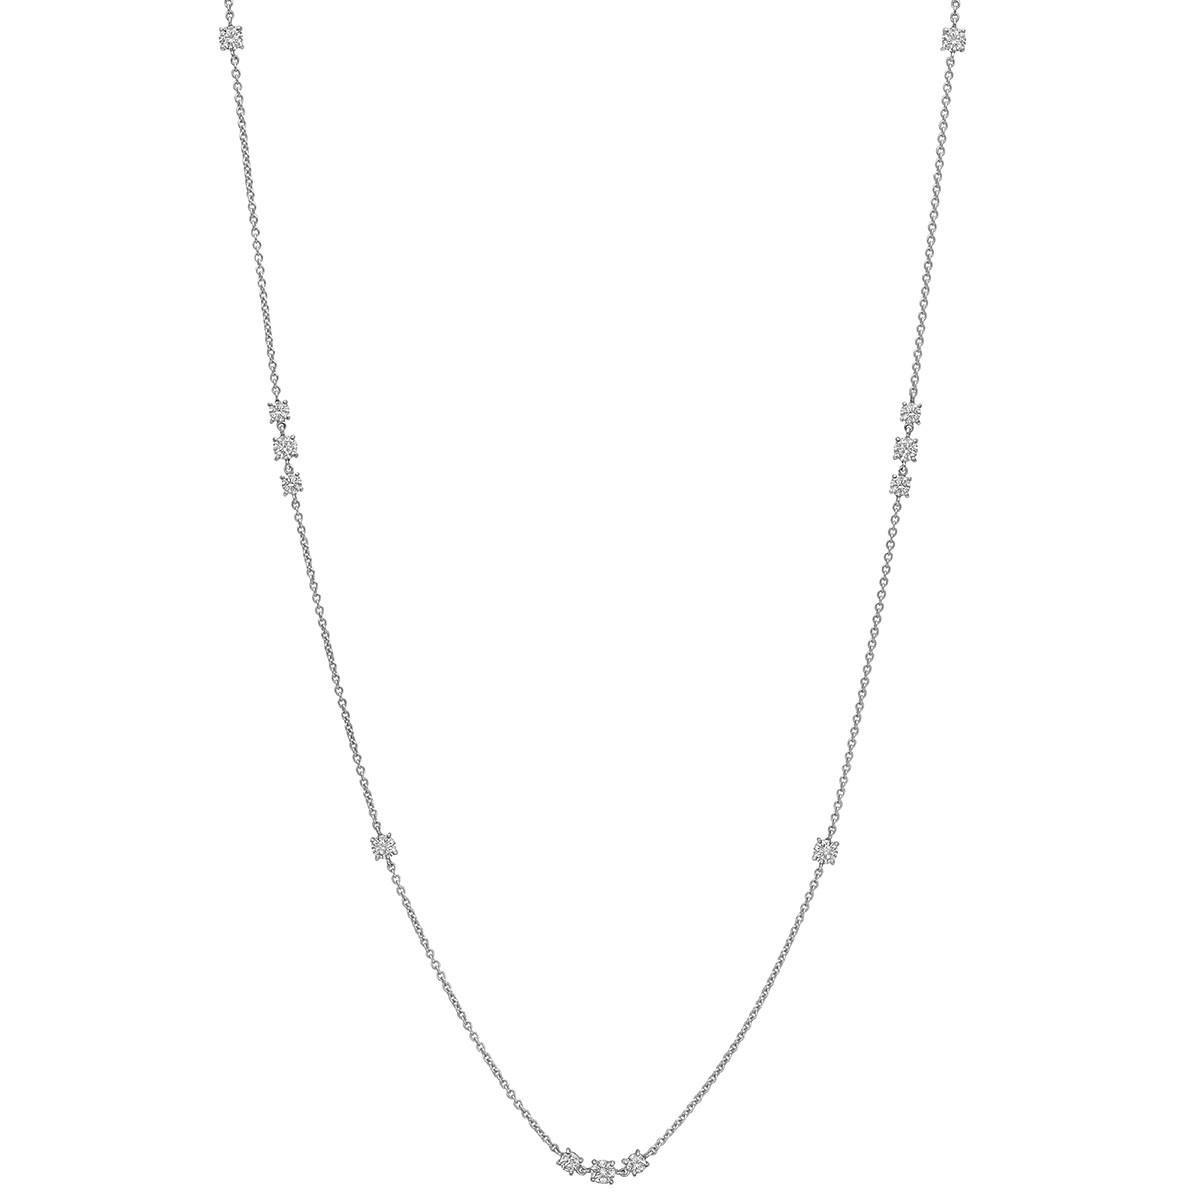 18k White Gold & Diamond Long Chain Necklace